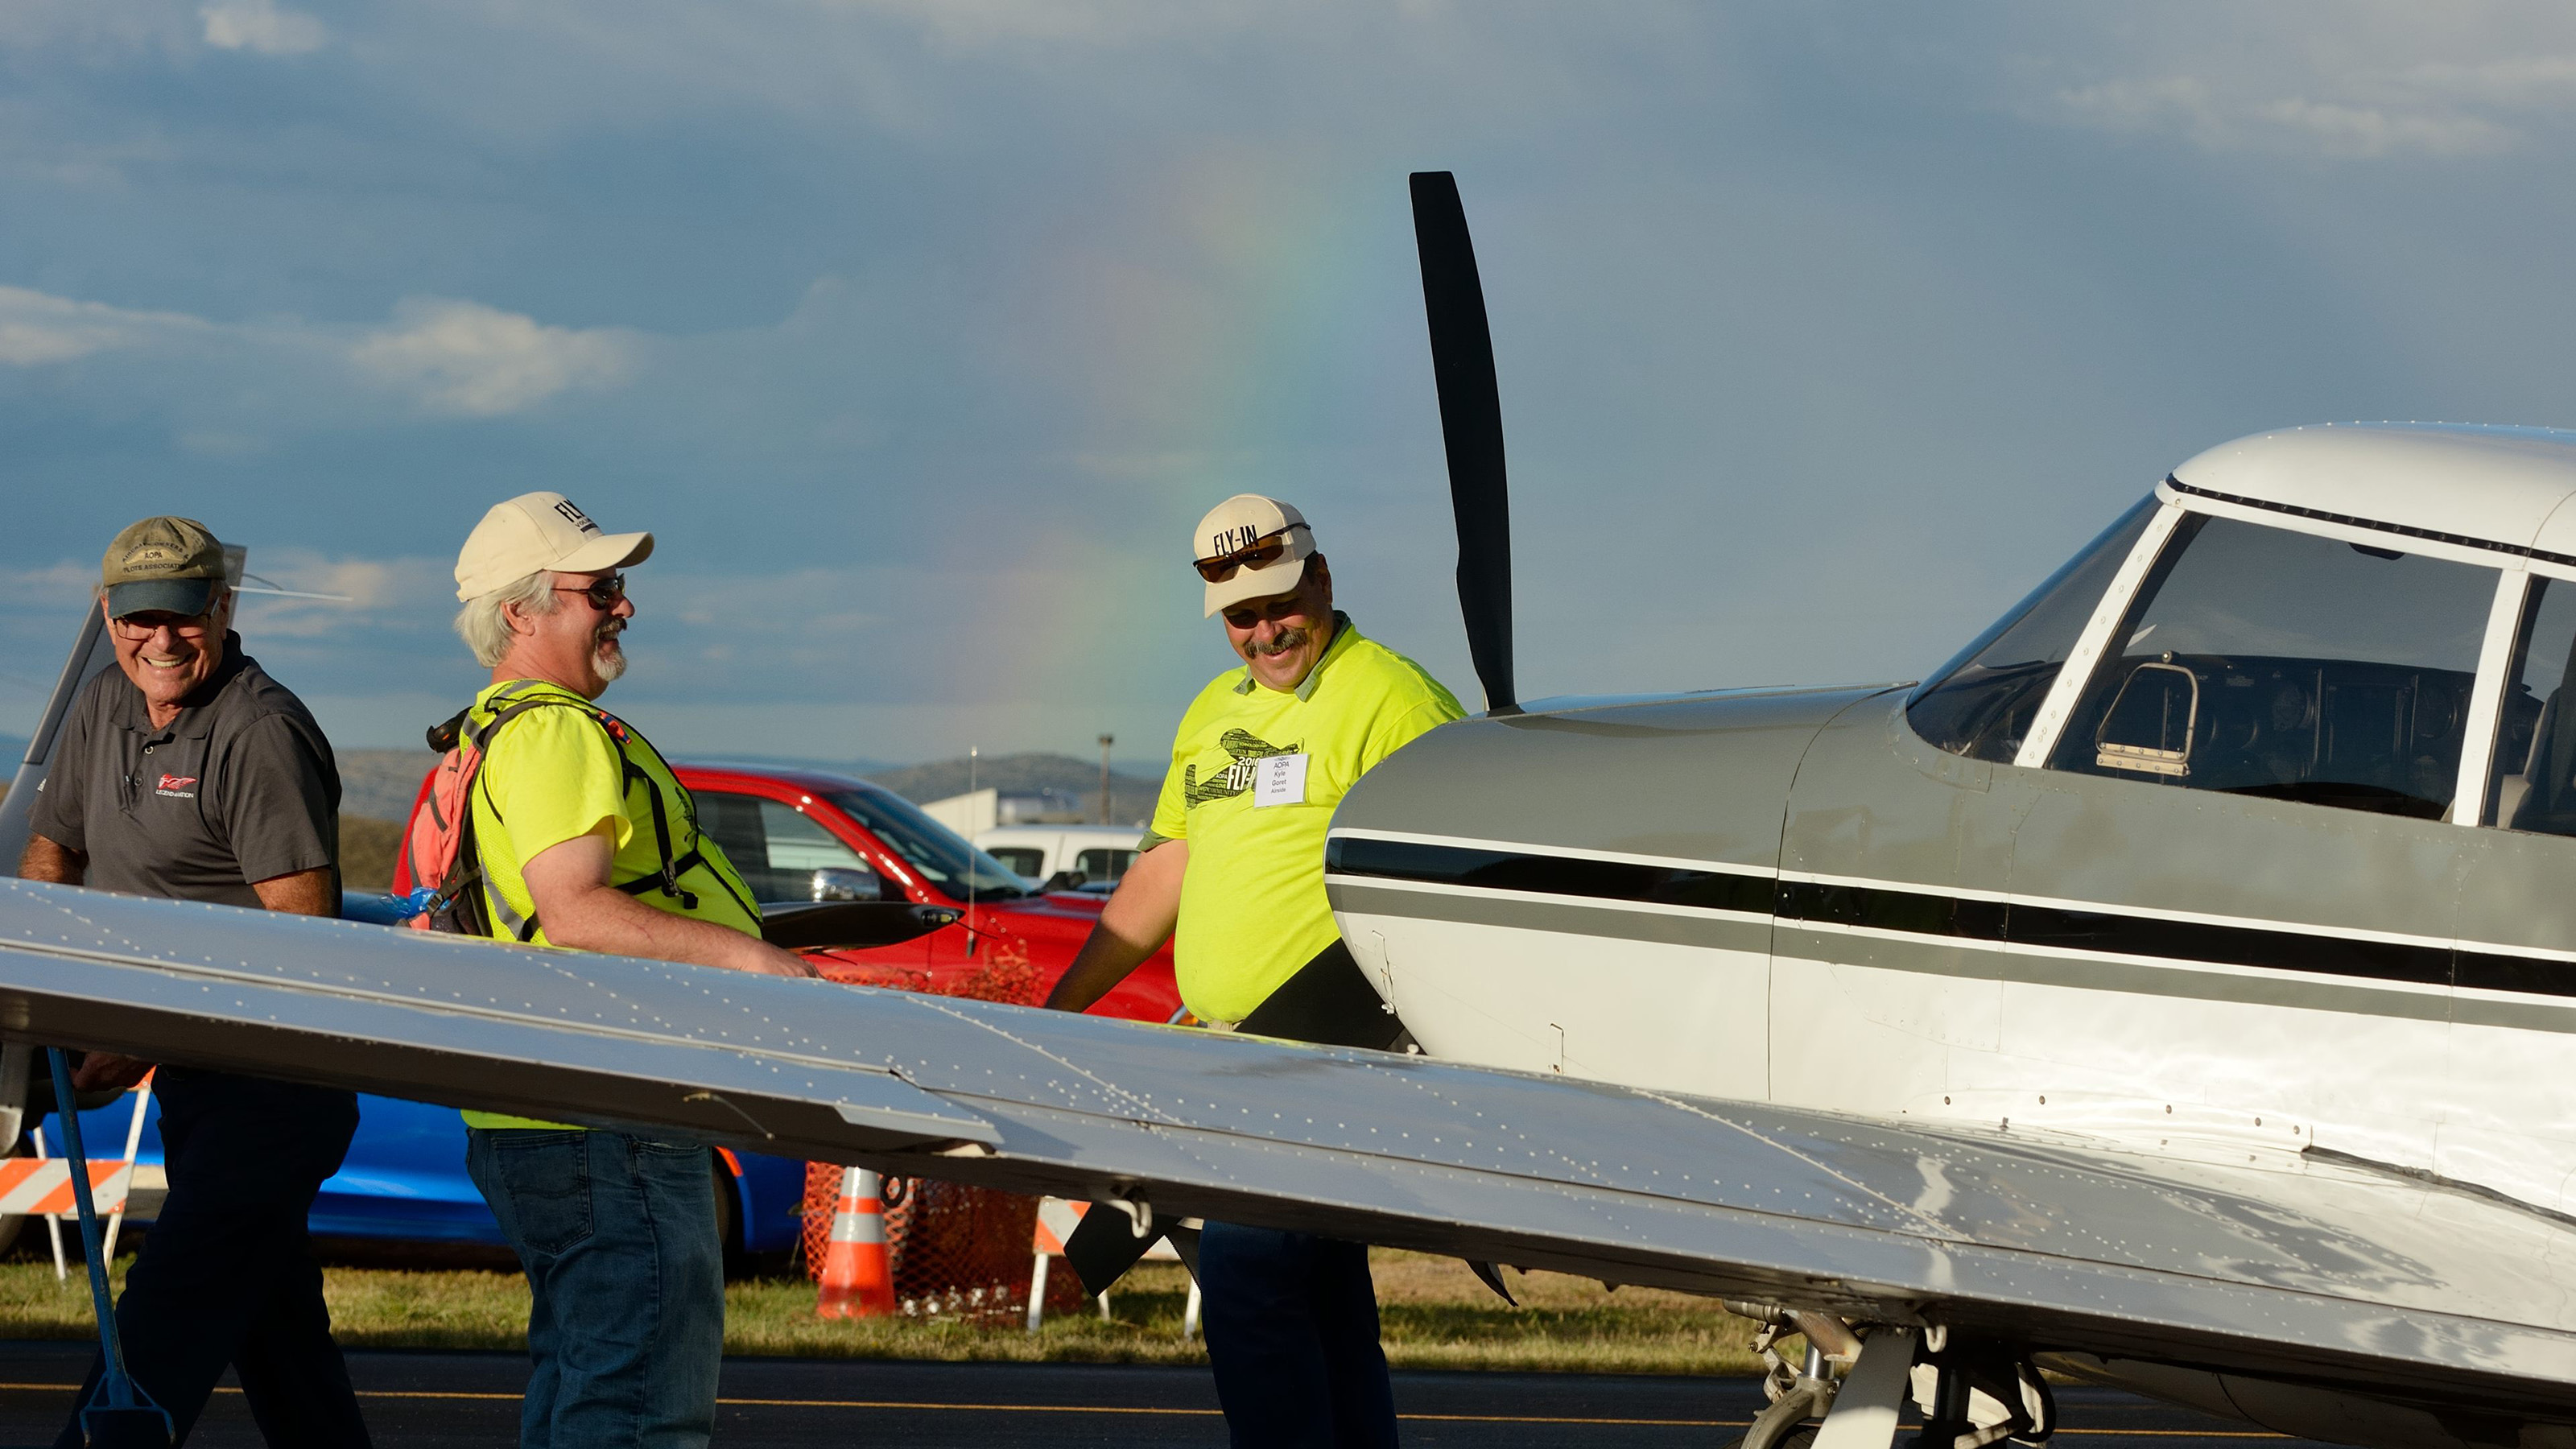 Airside volunteers share a laugh after positioning a Piper Comanche in the static display. A rainbow gives evidence of an afternoon rainshower. Photo by Mike Collins.